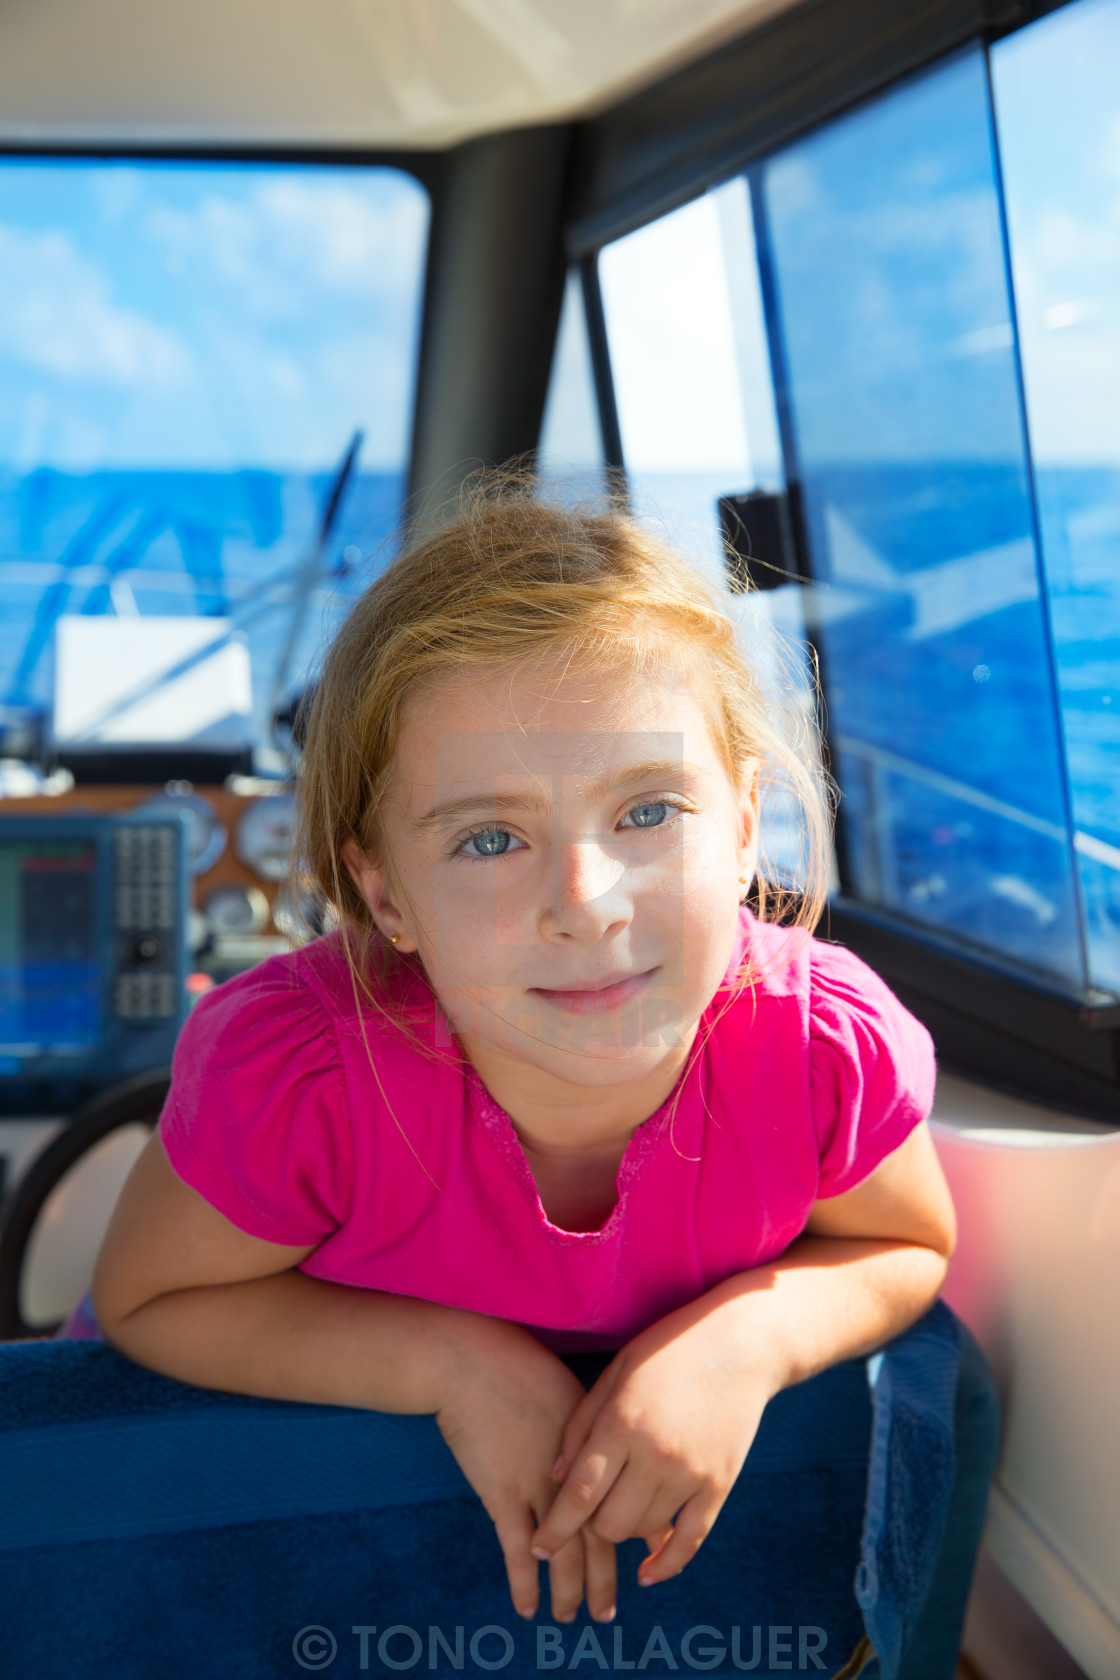 """Blond kid girl at boat indoor sailing smiling happy"" stock image"